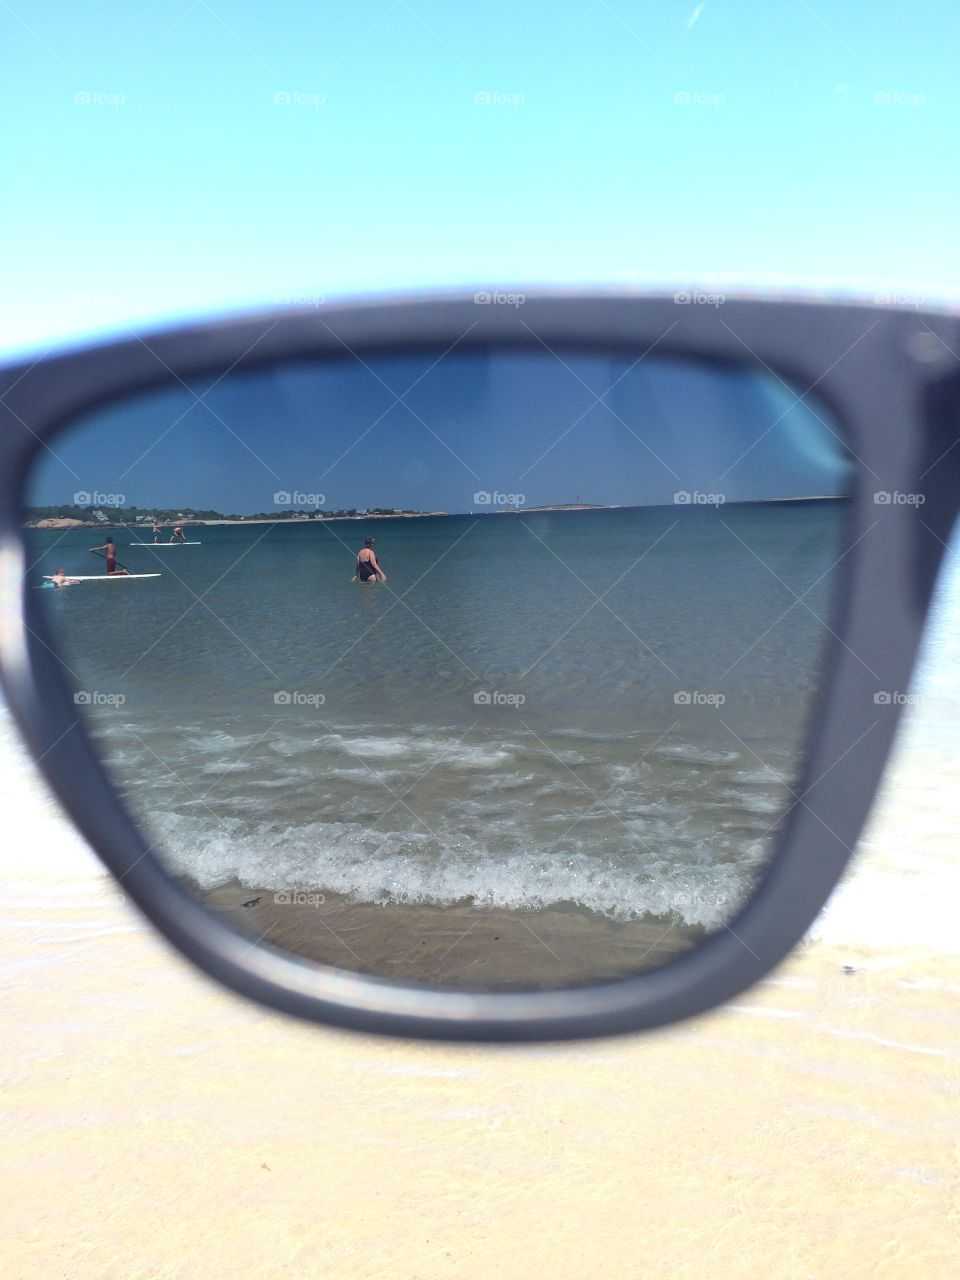 Through sunglasses